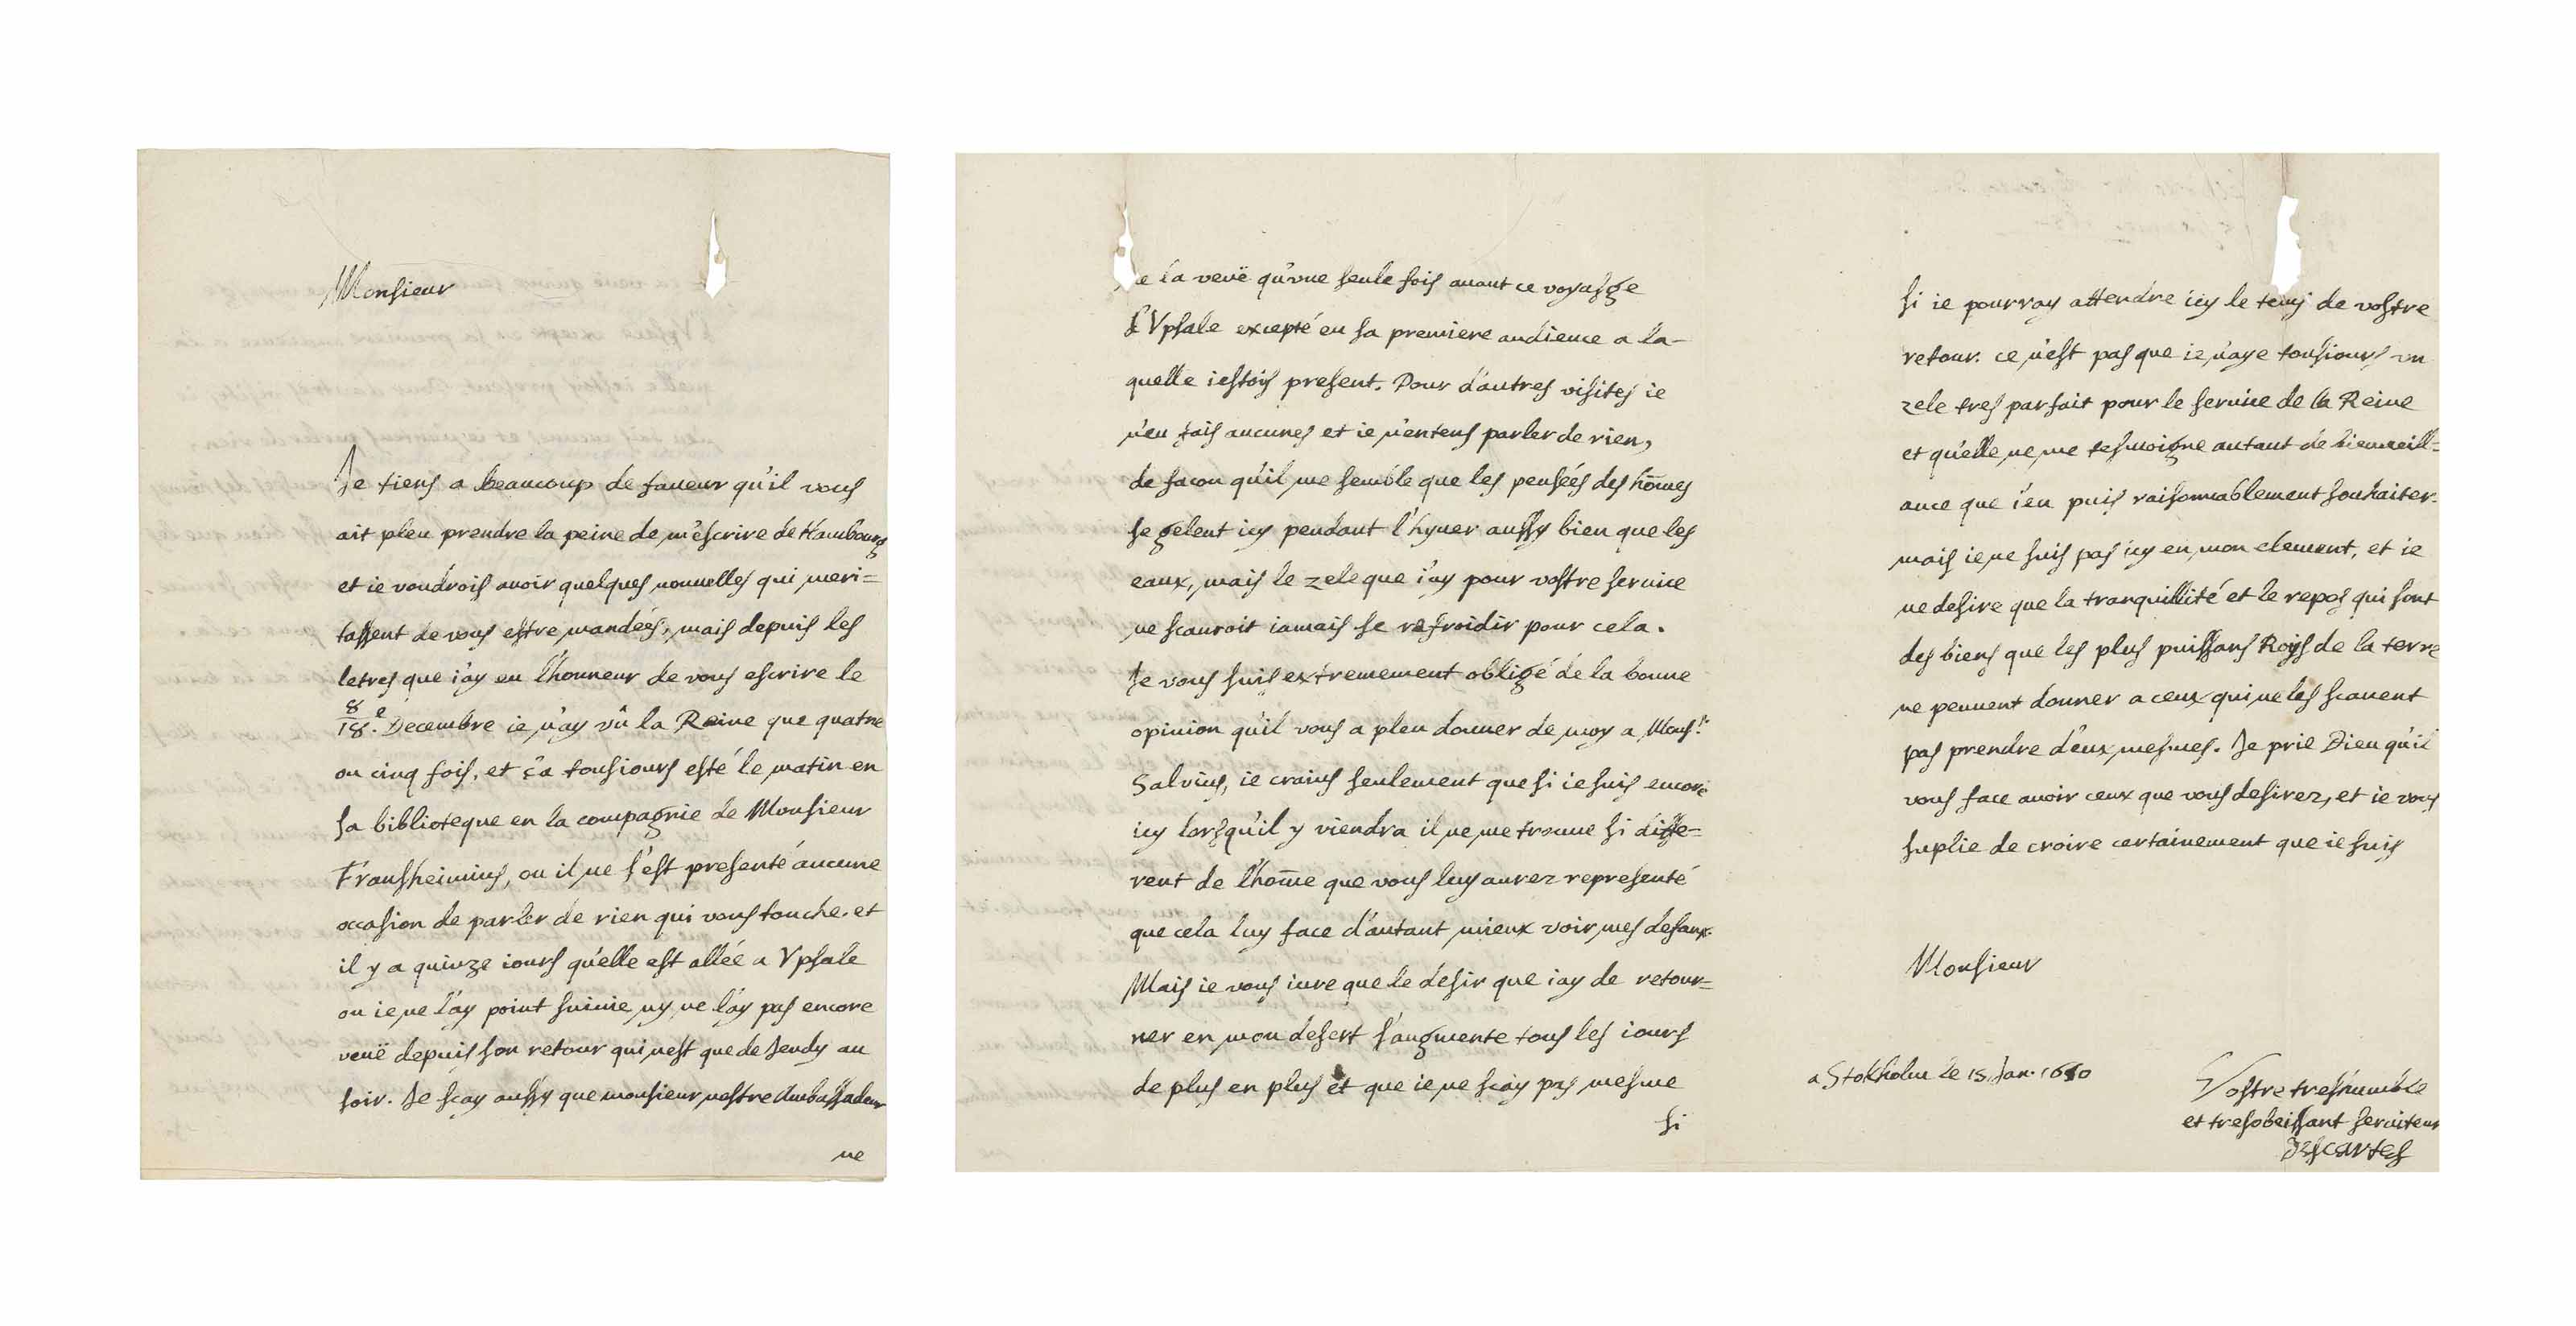 DESCARTES, René (1596-1650). Autograph letter signed ('Descartes') to [M. de Flessel, vicomte de Brégy], Stockholm, 15 January 1650, 3 pages, 4to (207 x 151mm), (small puncture at upper right, approx. 4 x 16mm, touching two words, minor soiling to verso of f.2), docketed on verso of f.2 'lettre de Mr Descartes / 15 Janvier 1650'. Provenance: Hunolstein collection; Roger Braunschweig collection.